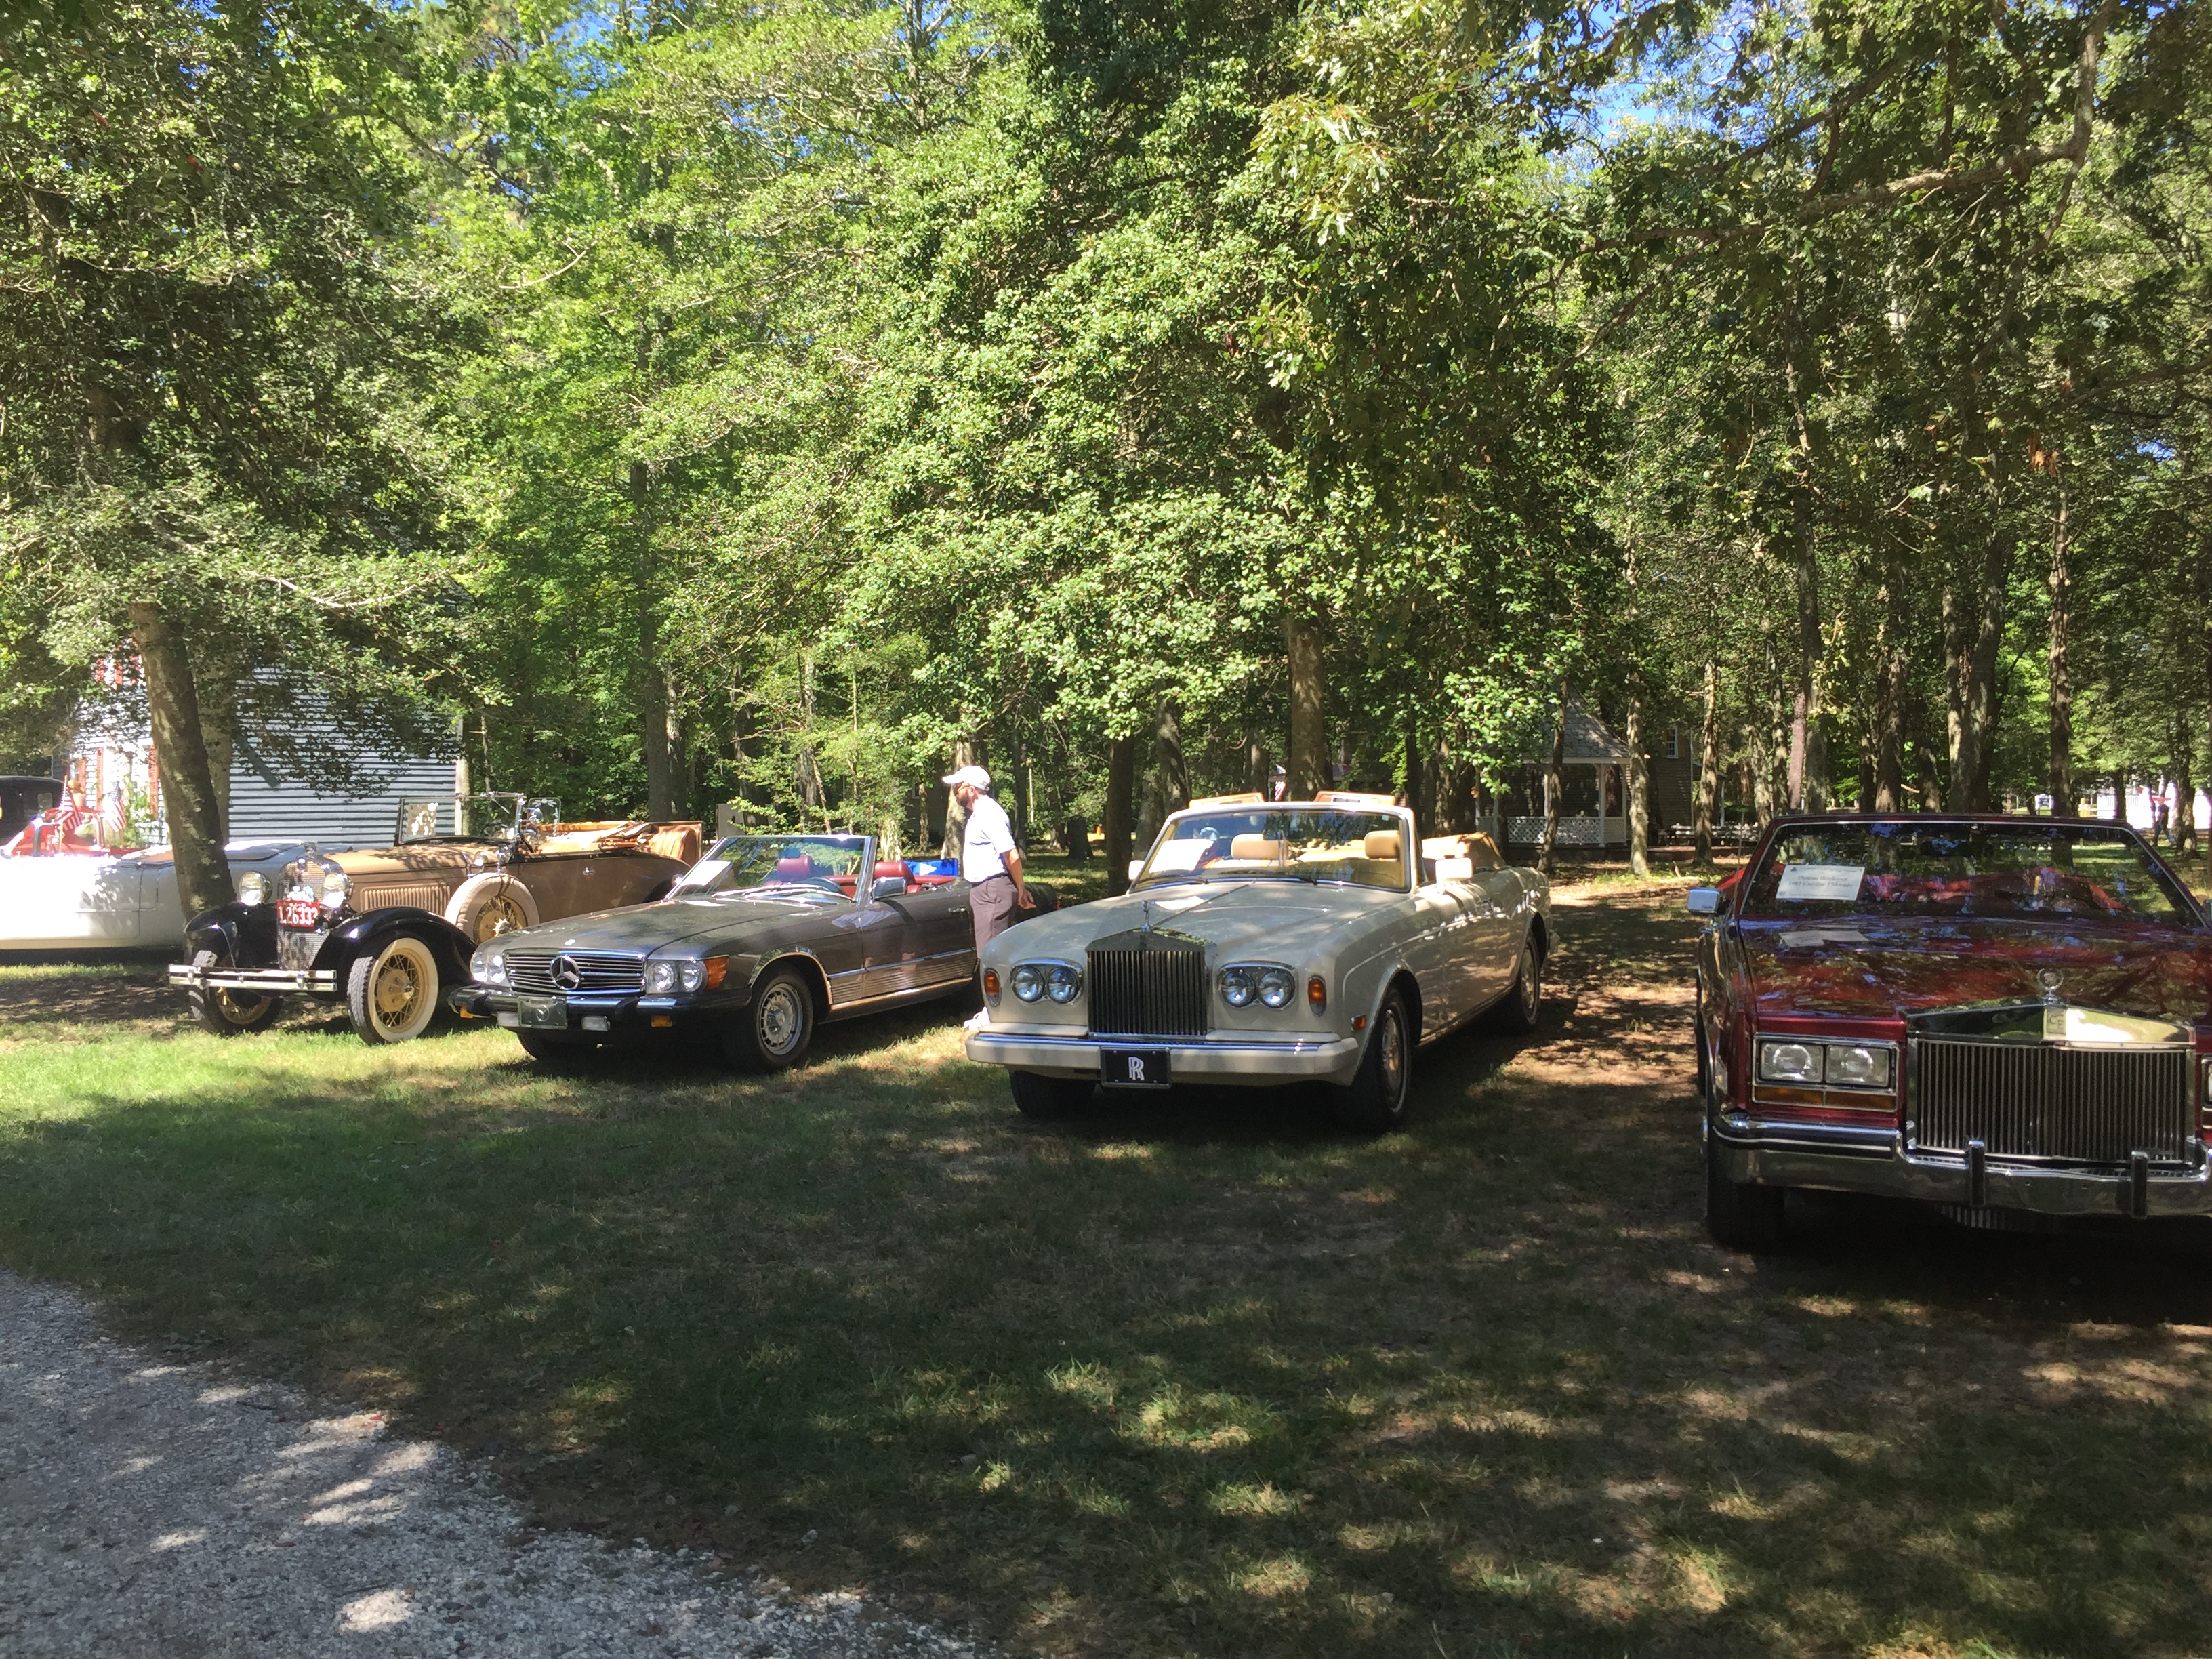 2019 HISTORIC COLD SPRING VILLAGE ANTIQUE & CLASSIC AUTOMOBILE SHOW